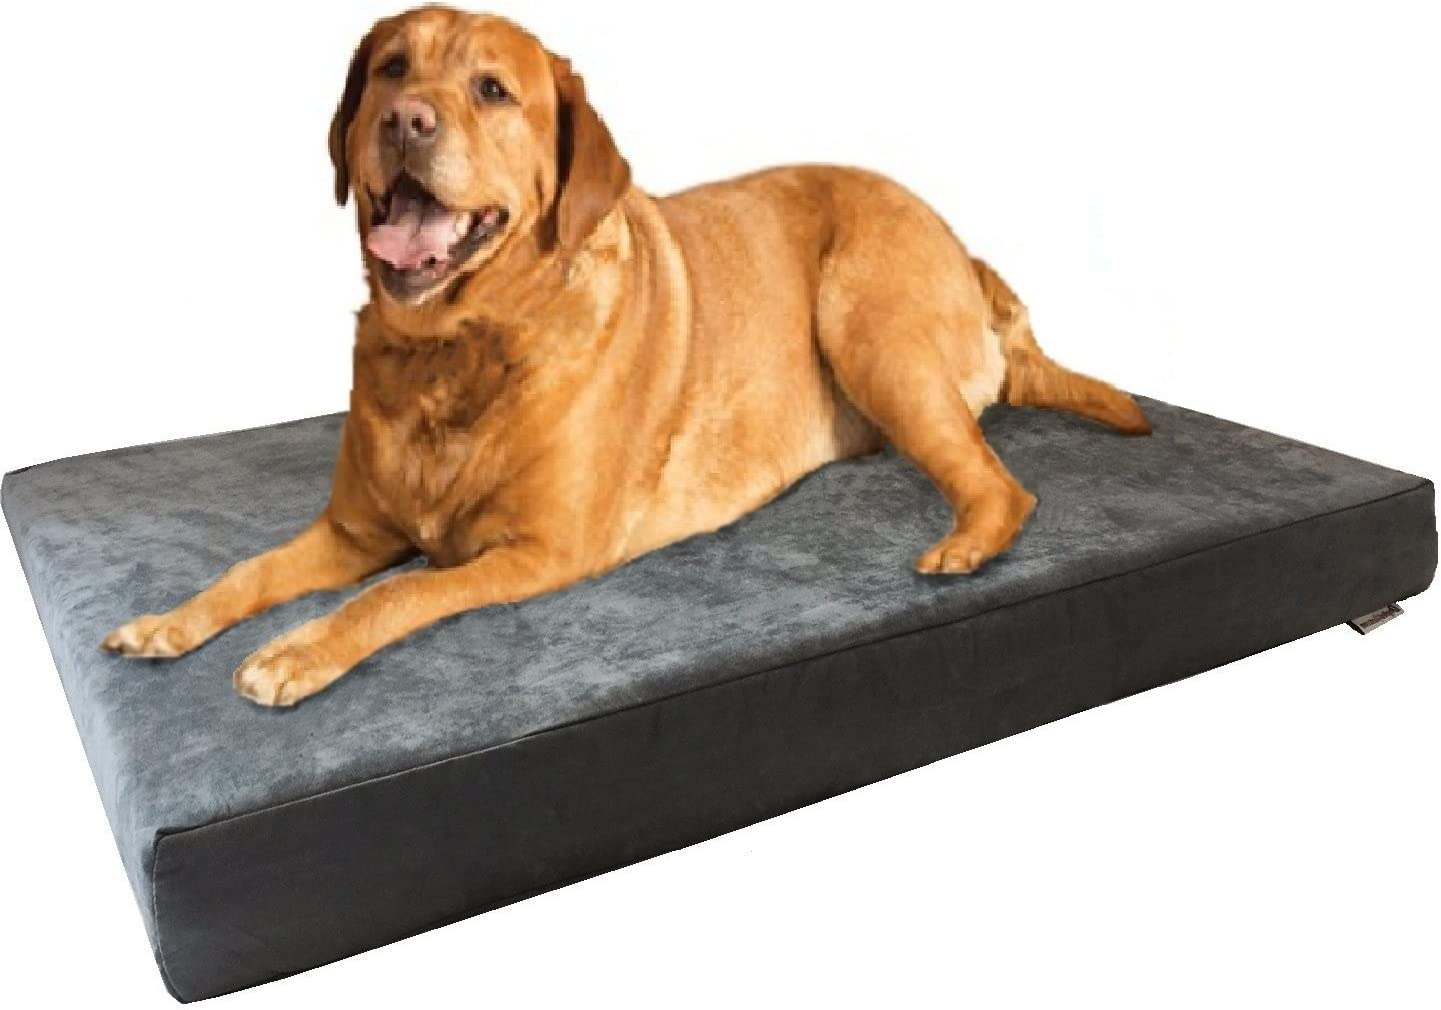 Dogbed4less Jumbo Orthopedic Gel Memory Foam Pet Bed with Waterproof Internal Case 2 Washable Microsuede External Cover for Larger Dog